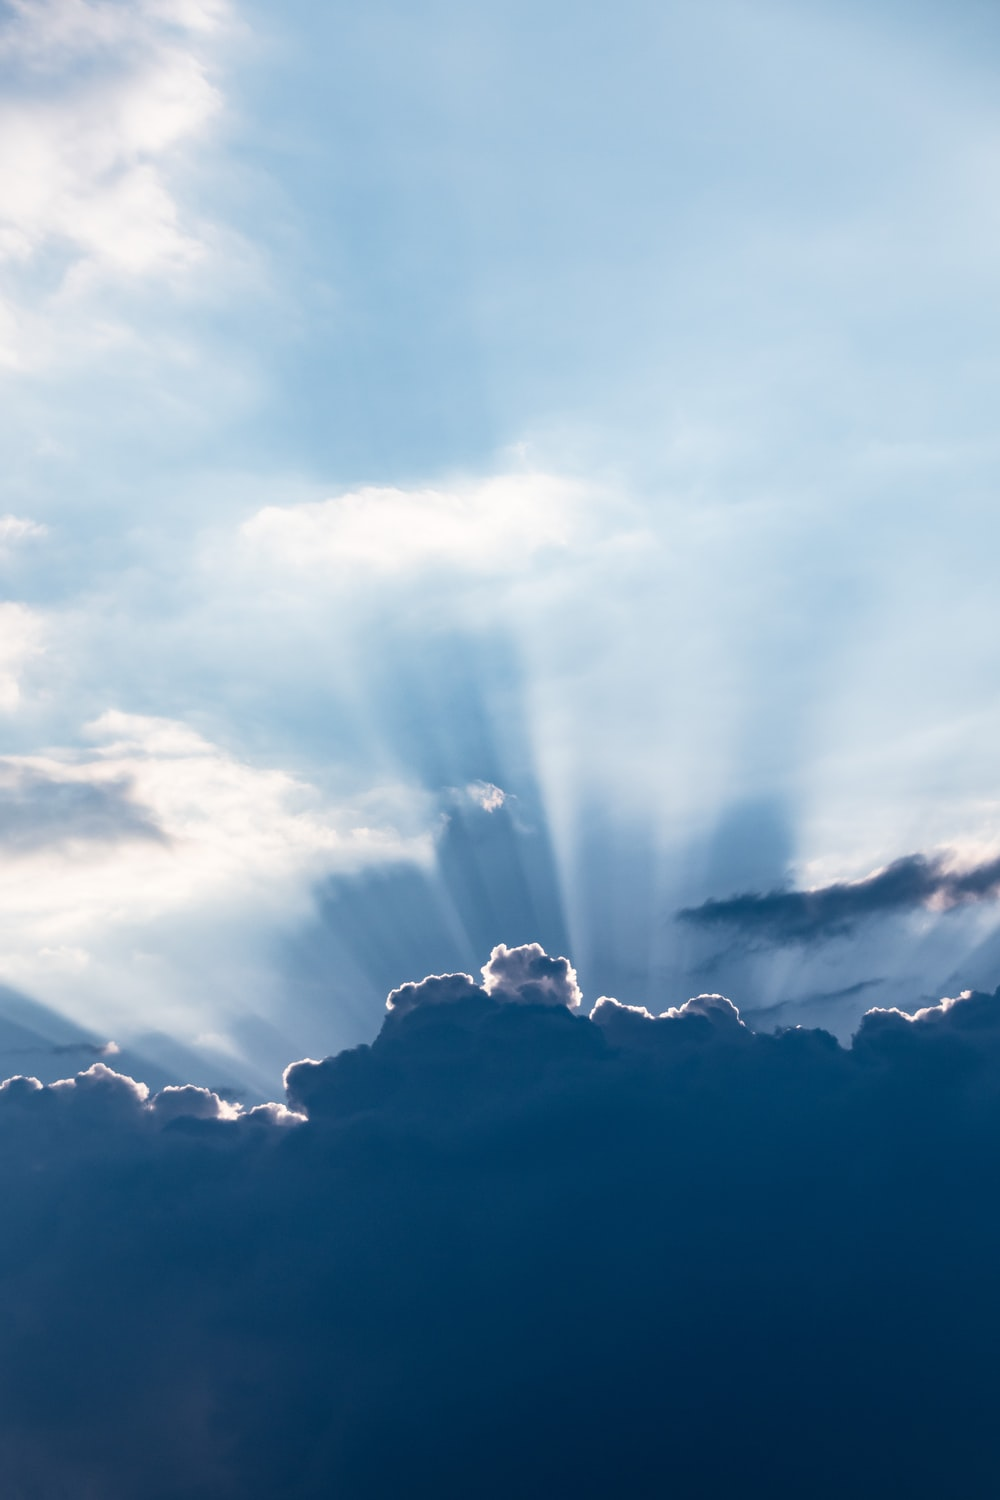 sun rays above silhouette of clouds